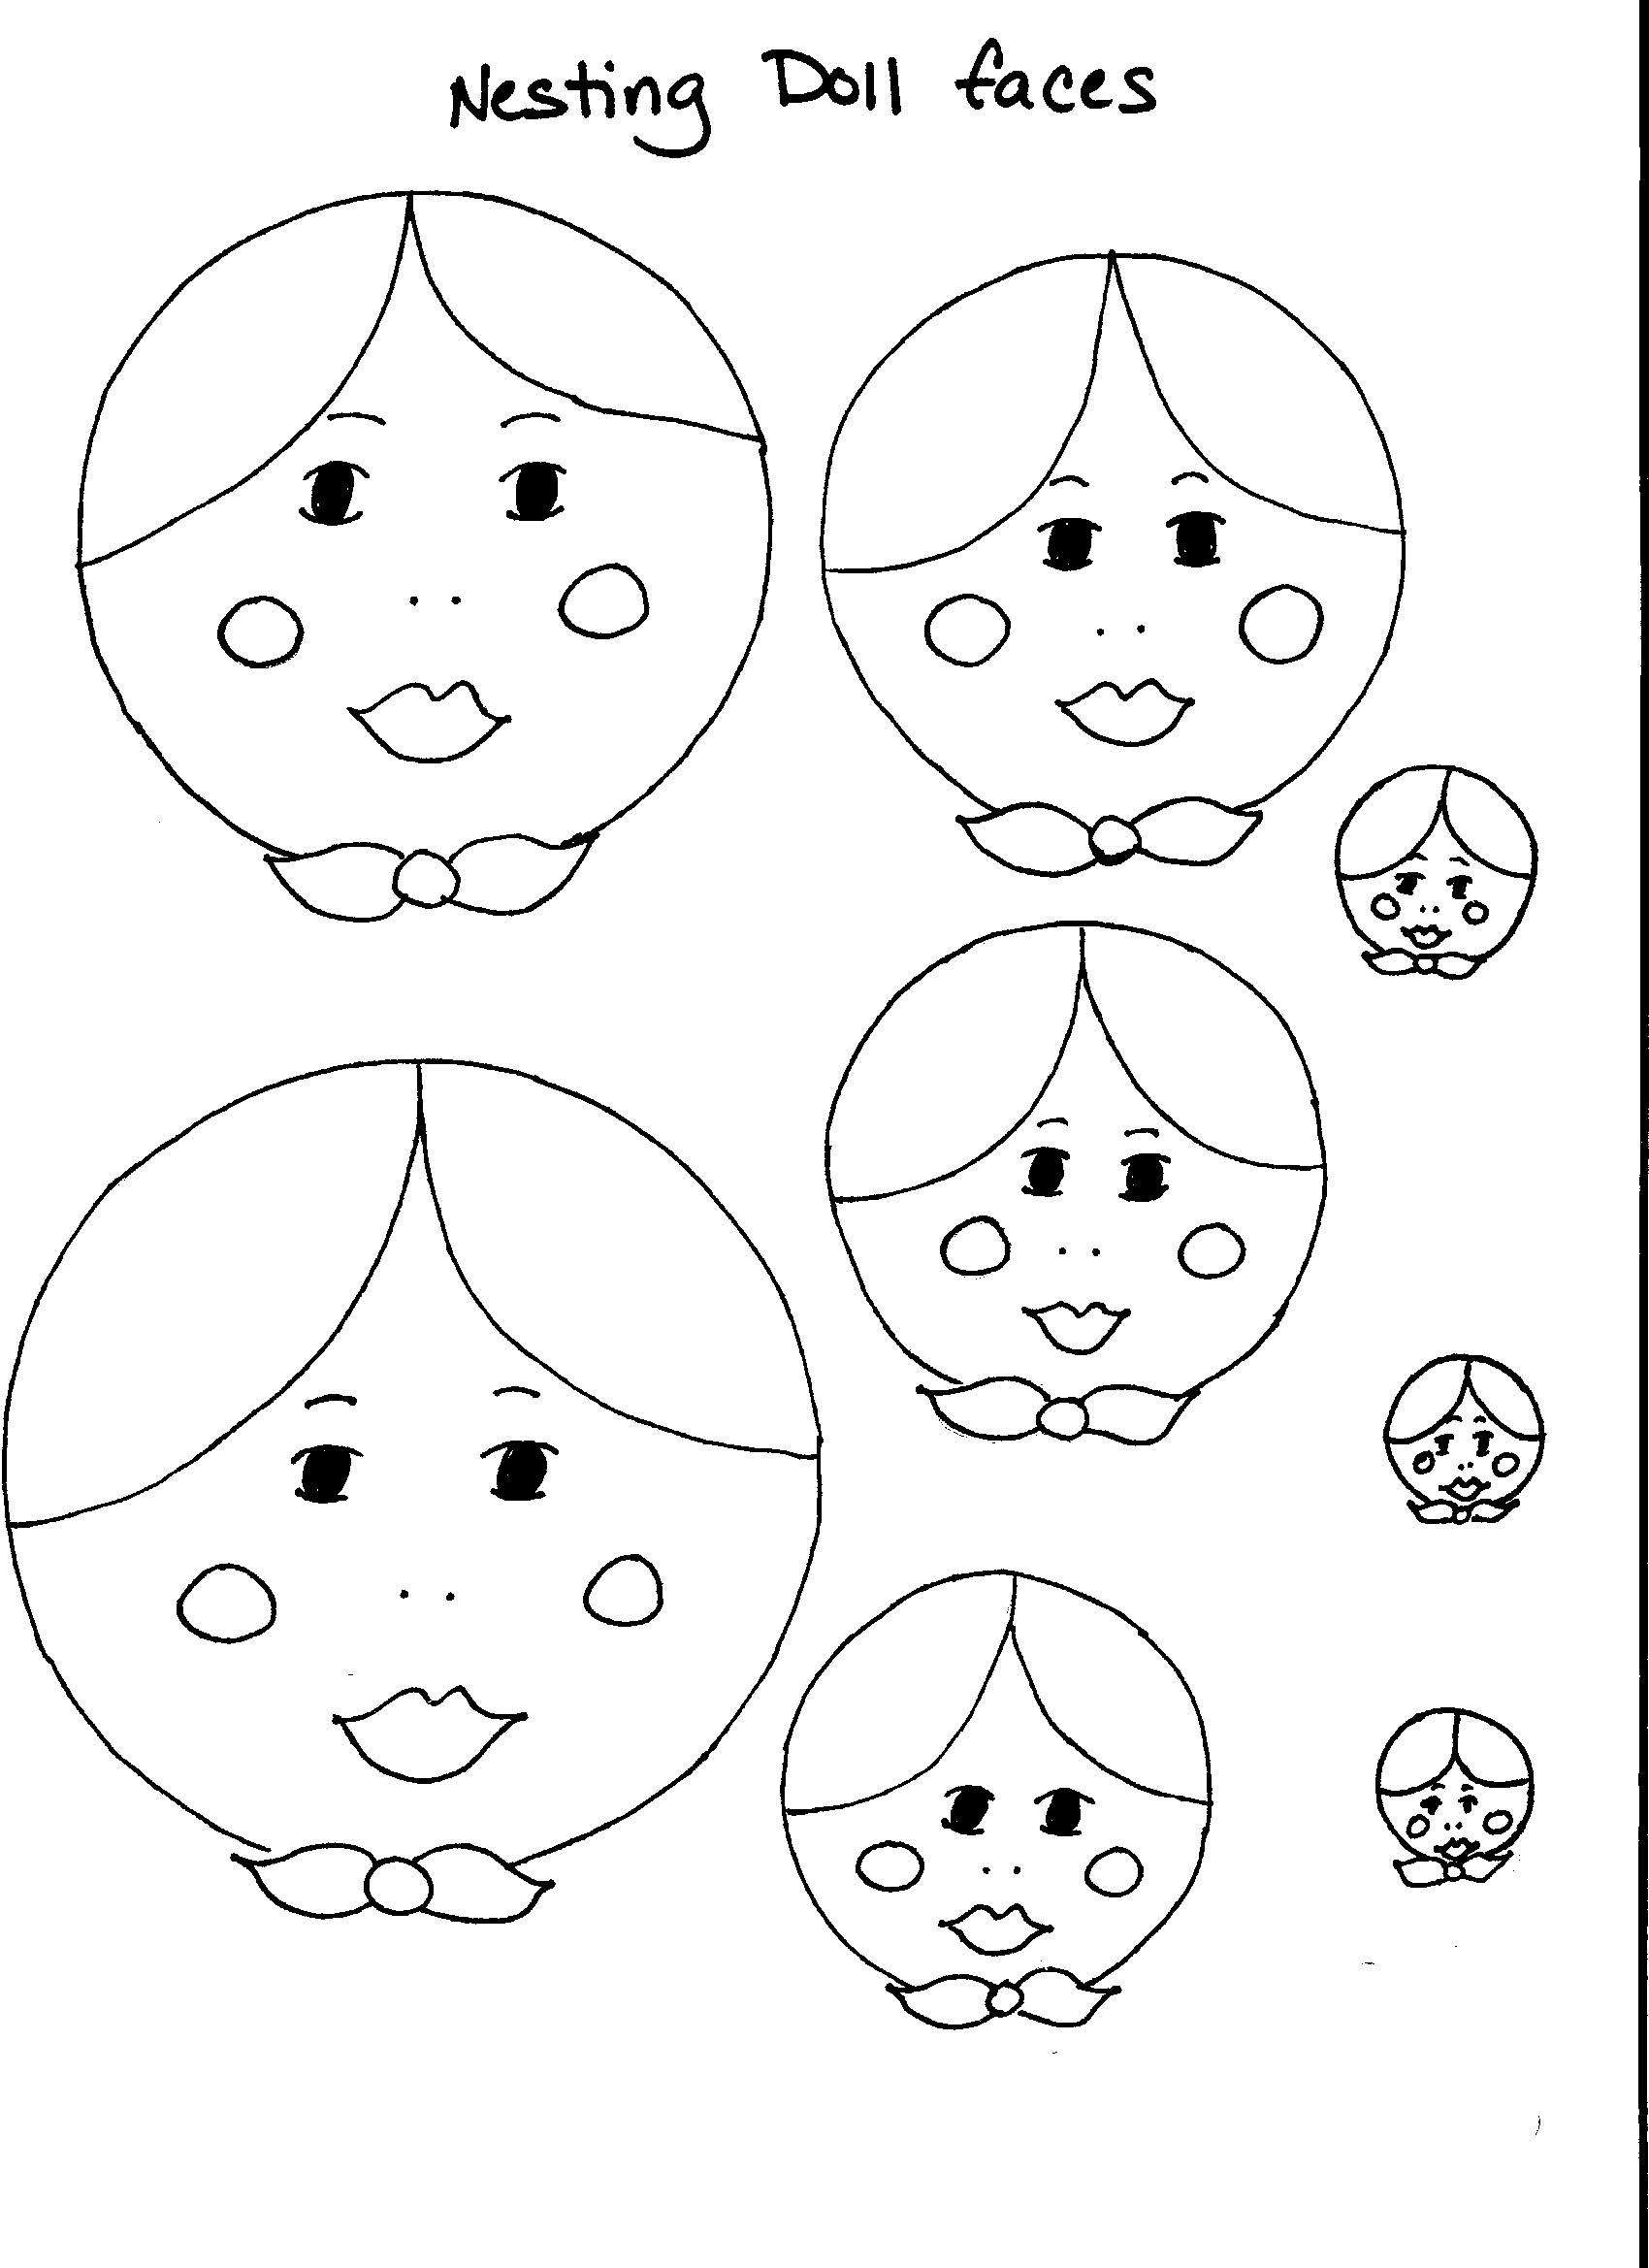 Dolls clipart doll face. Faces drawing at getdrawings